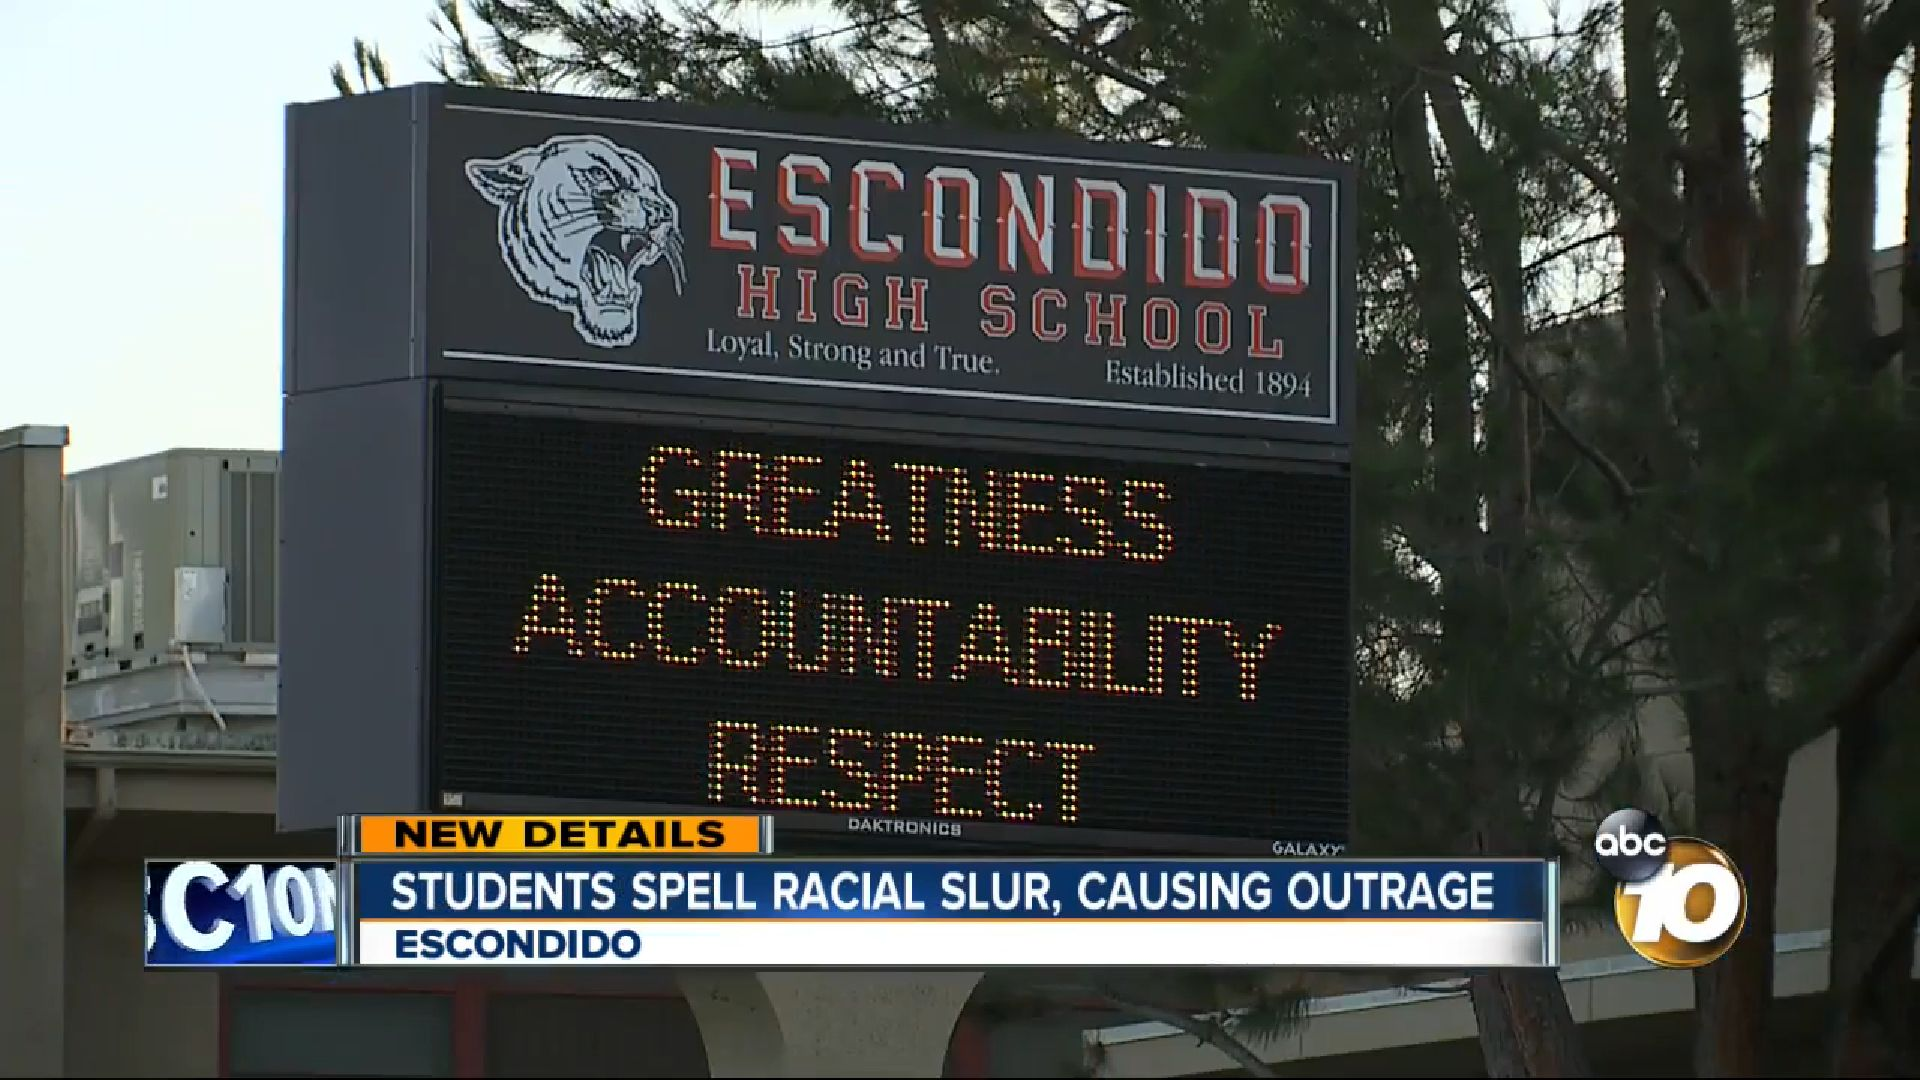 Students at Escondido High School in California are facing disciplinary action after spelling out racial and anti-gay words for school photos